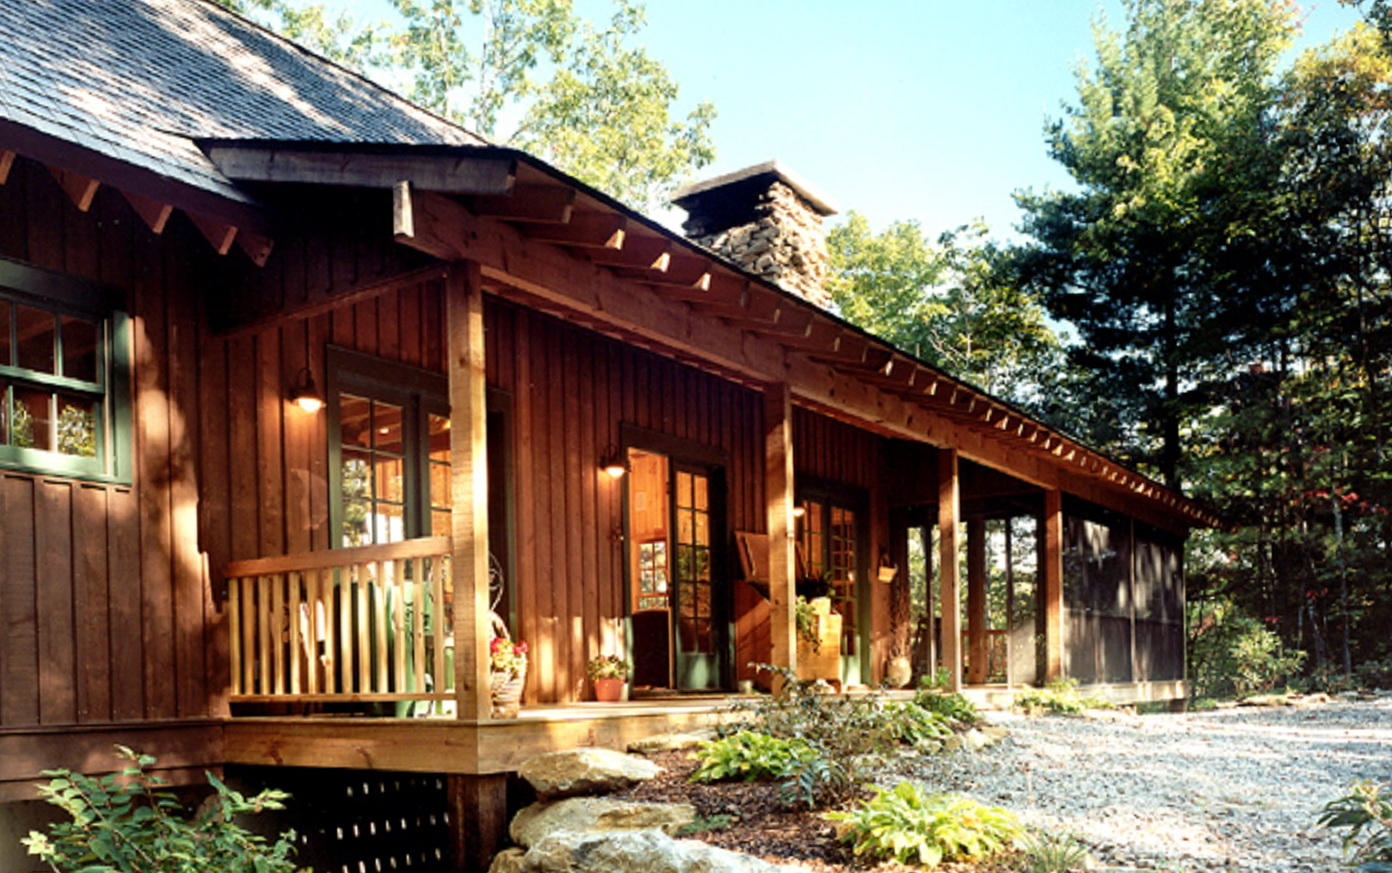 cabin house plans covered porch small craftsman home plans ranch cabin house plans covered porch rustic contemporary home plans cabin house plans covered porch cabin house